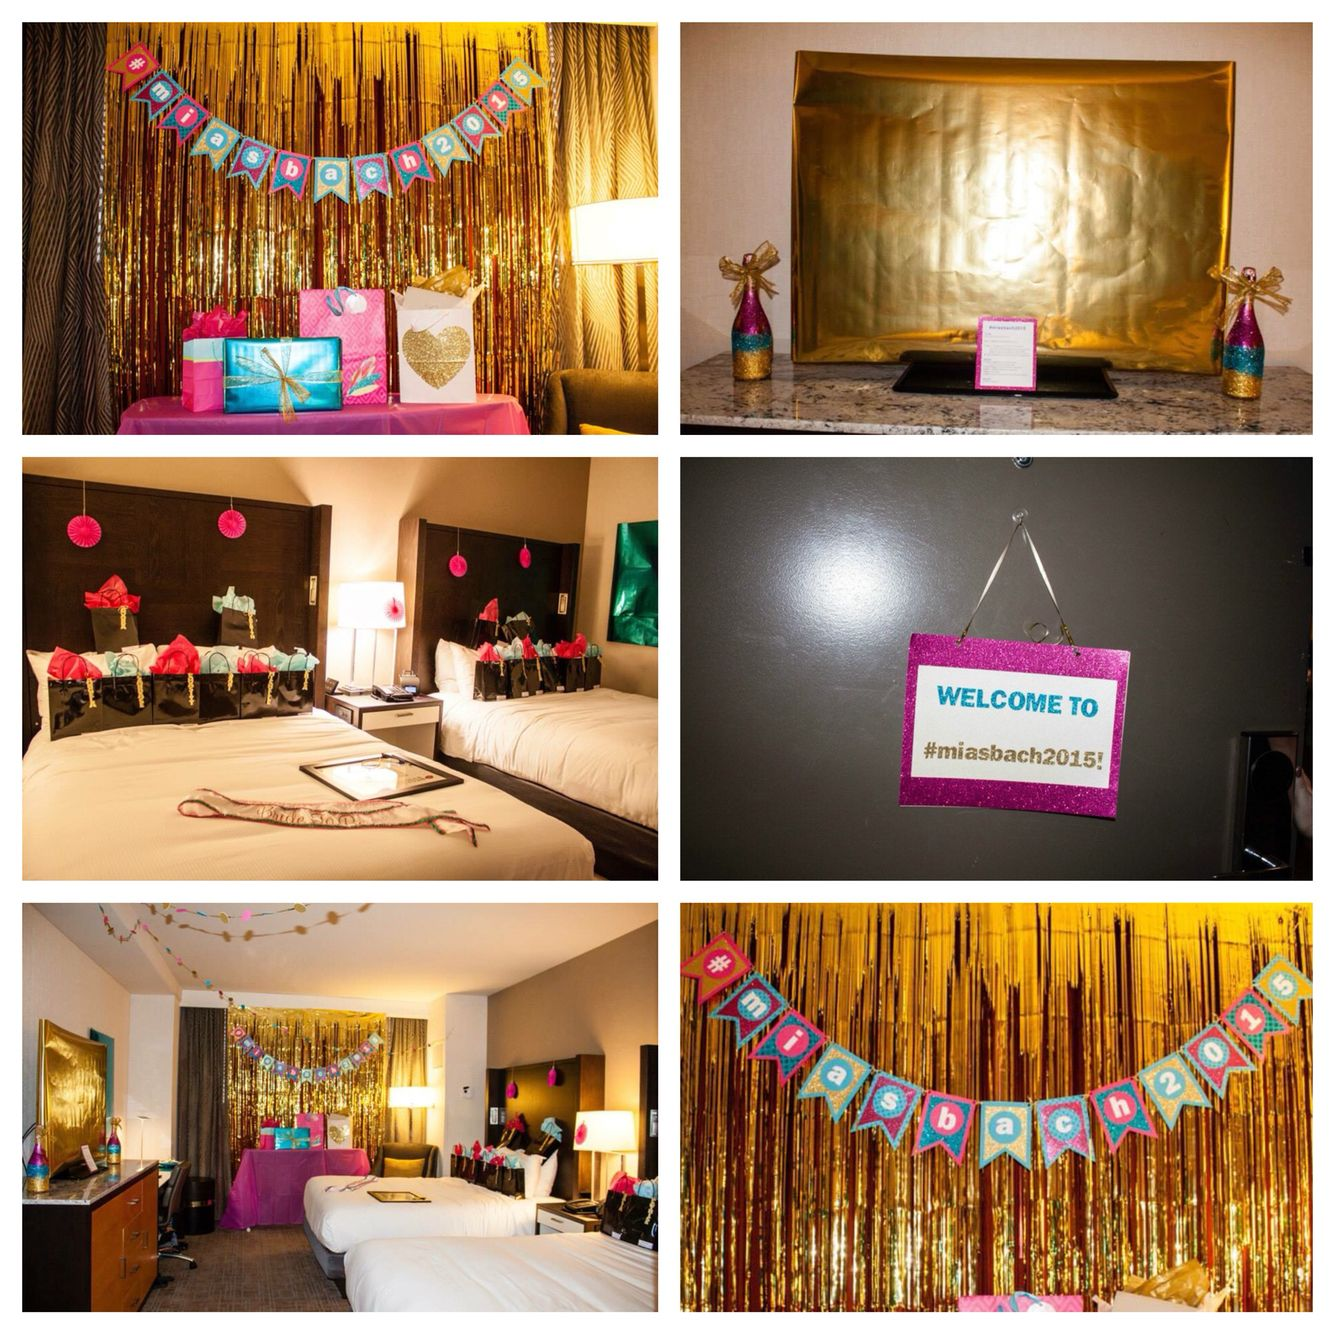 Hotel room bachelorette decorations pink turquoise gold for Hotel room decor for birthday